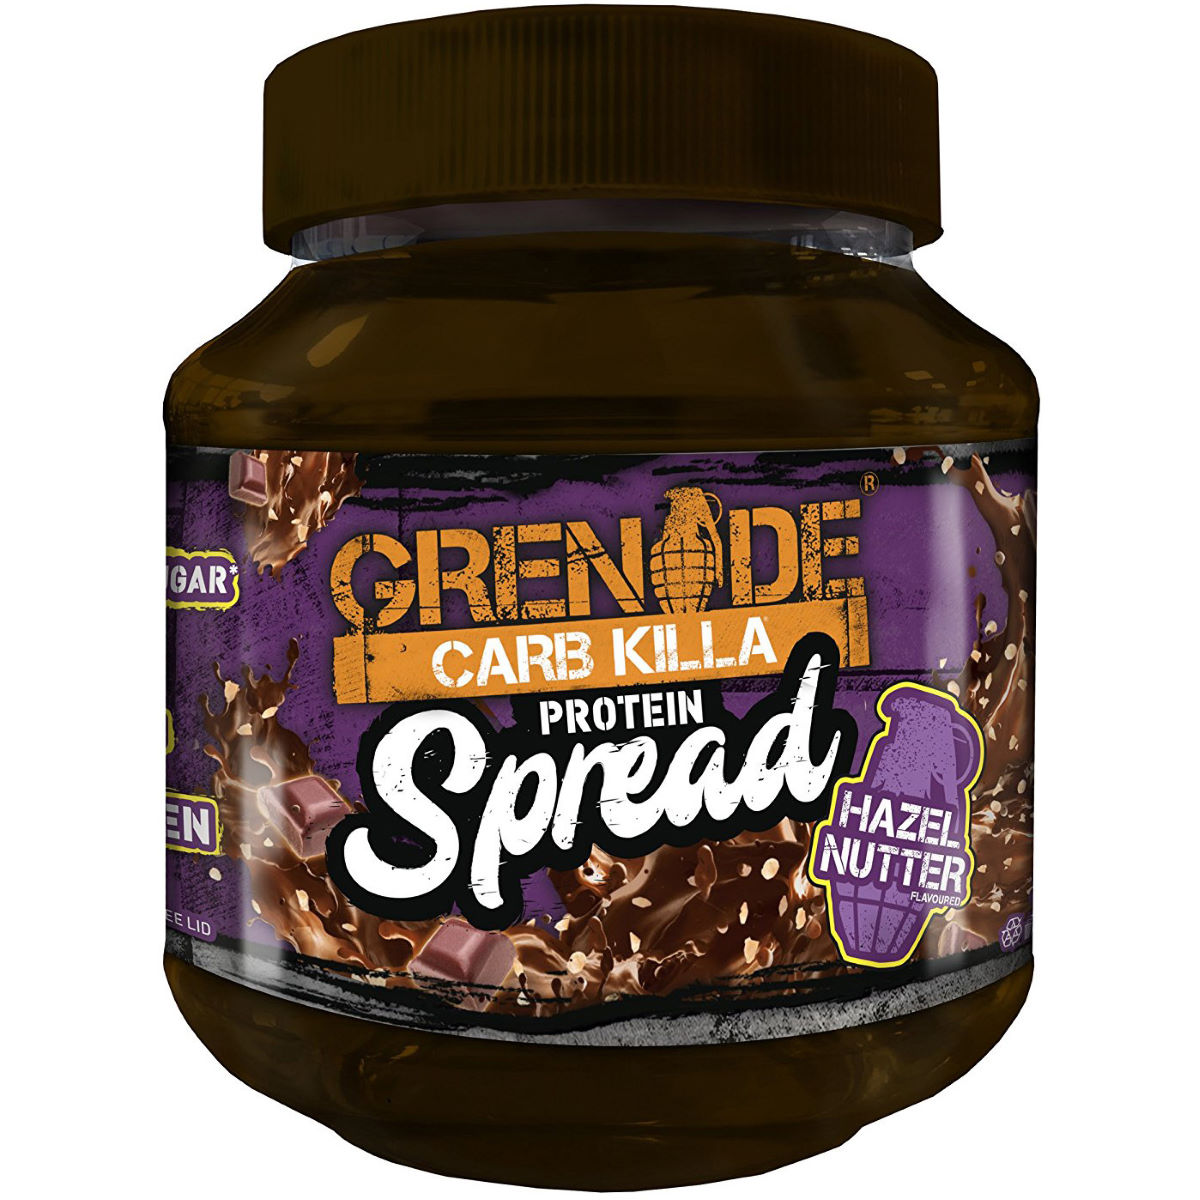 Grenade Carb Killa Spread (360g) - 360g Hazel Nutter | Nut Butter